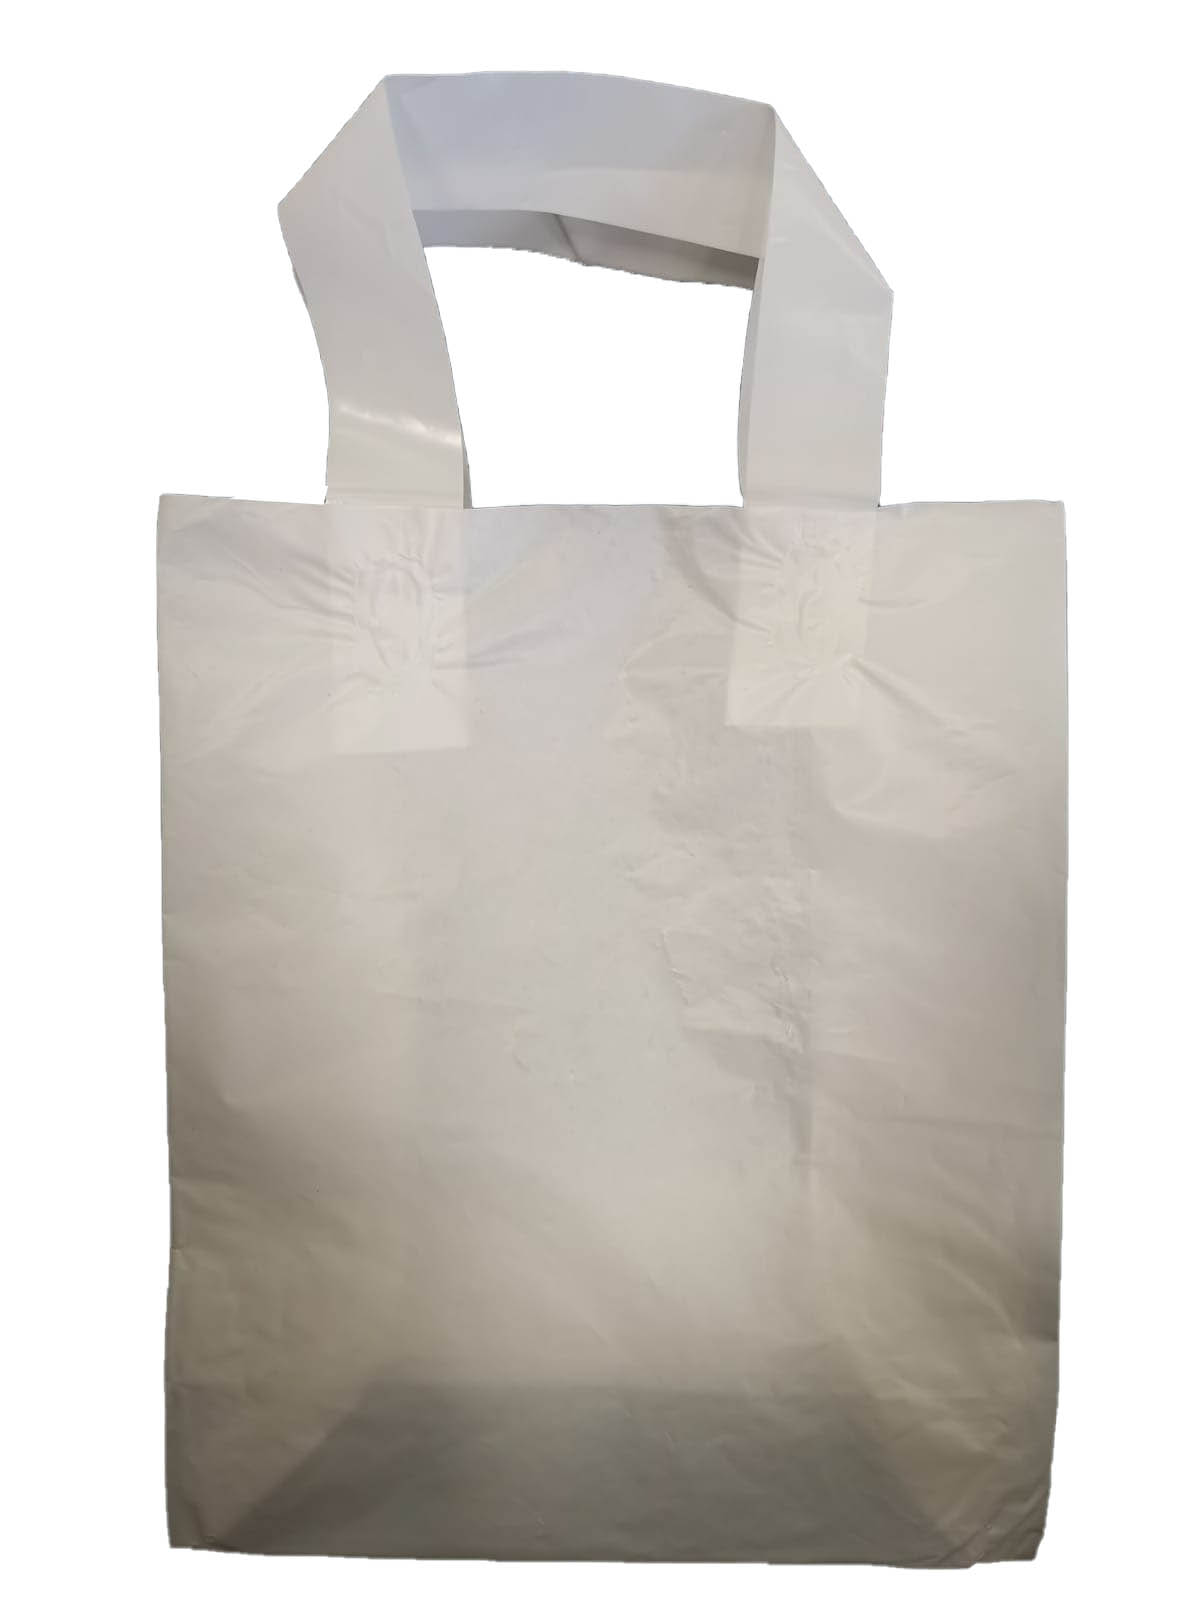 LARGE FLEXI LOOP HANDLE WHITE CARRIERS 1x250